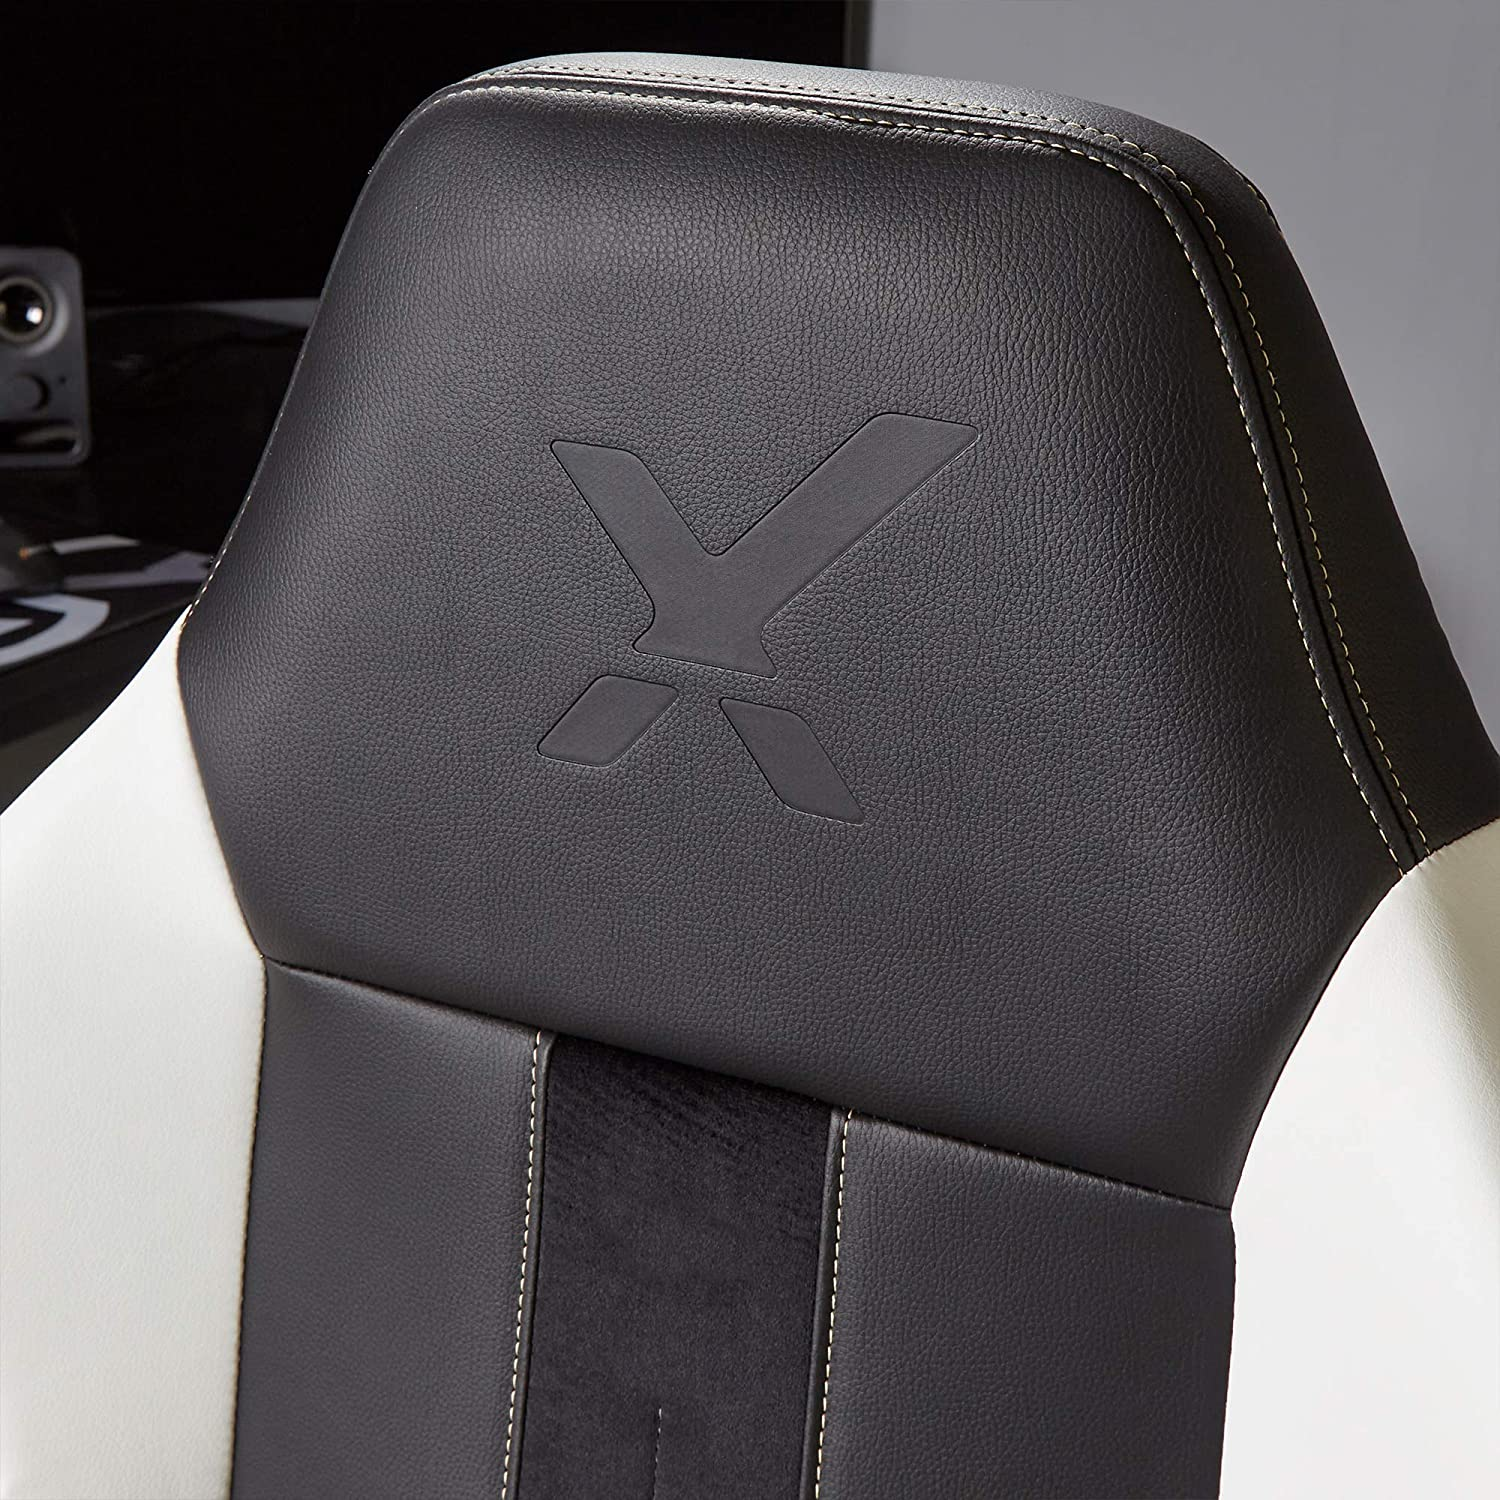 X-Rocker Echo Esports Gaming Chair with Ultimate Phase Changing Comfort Black / Gold / White